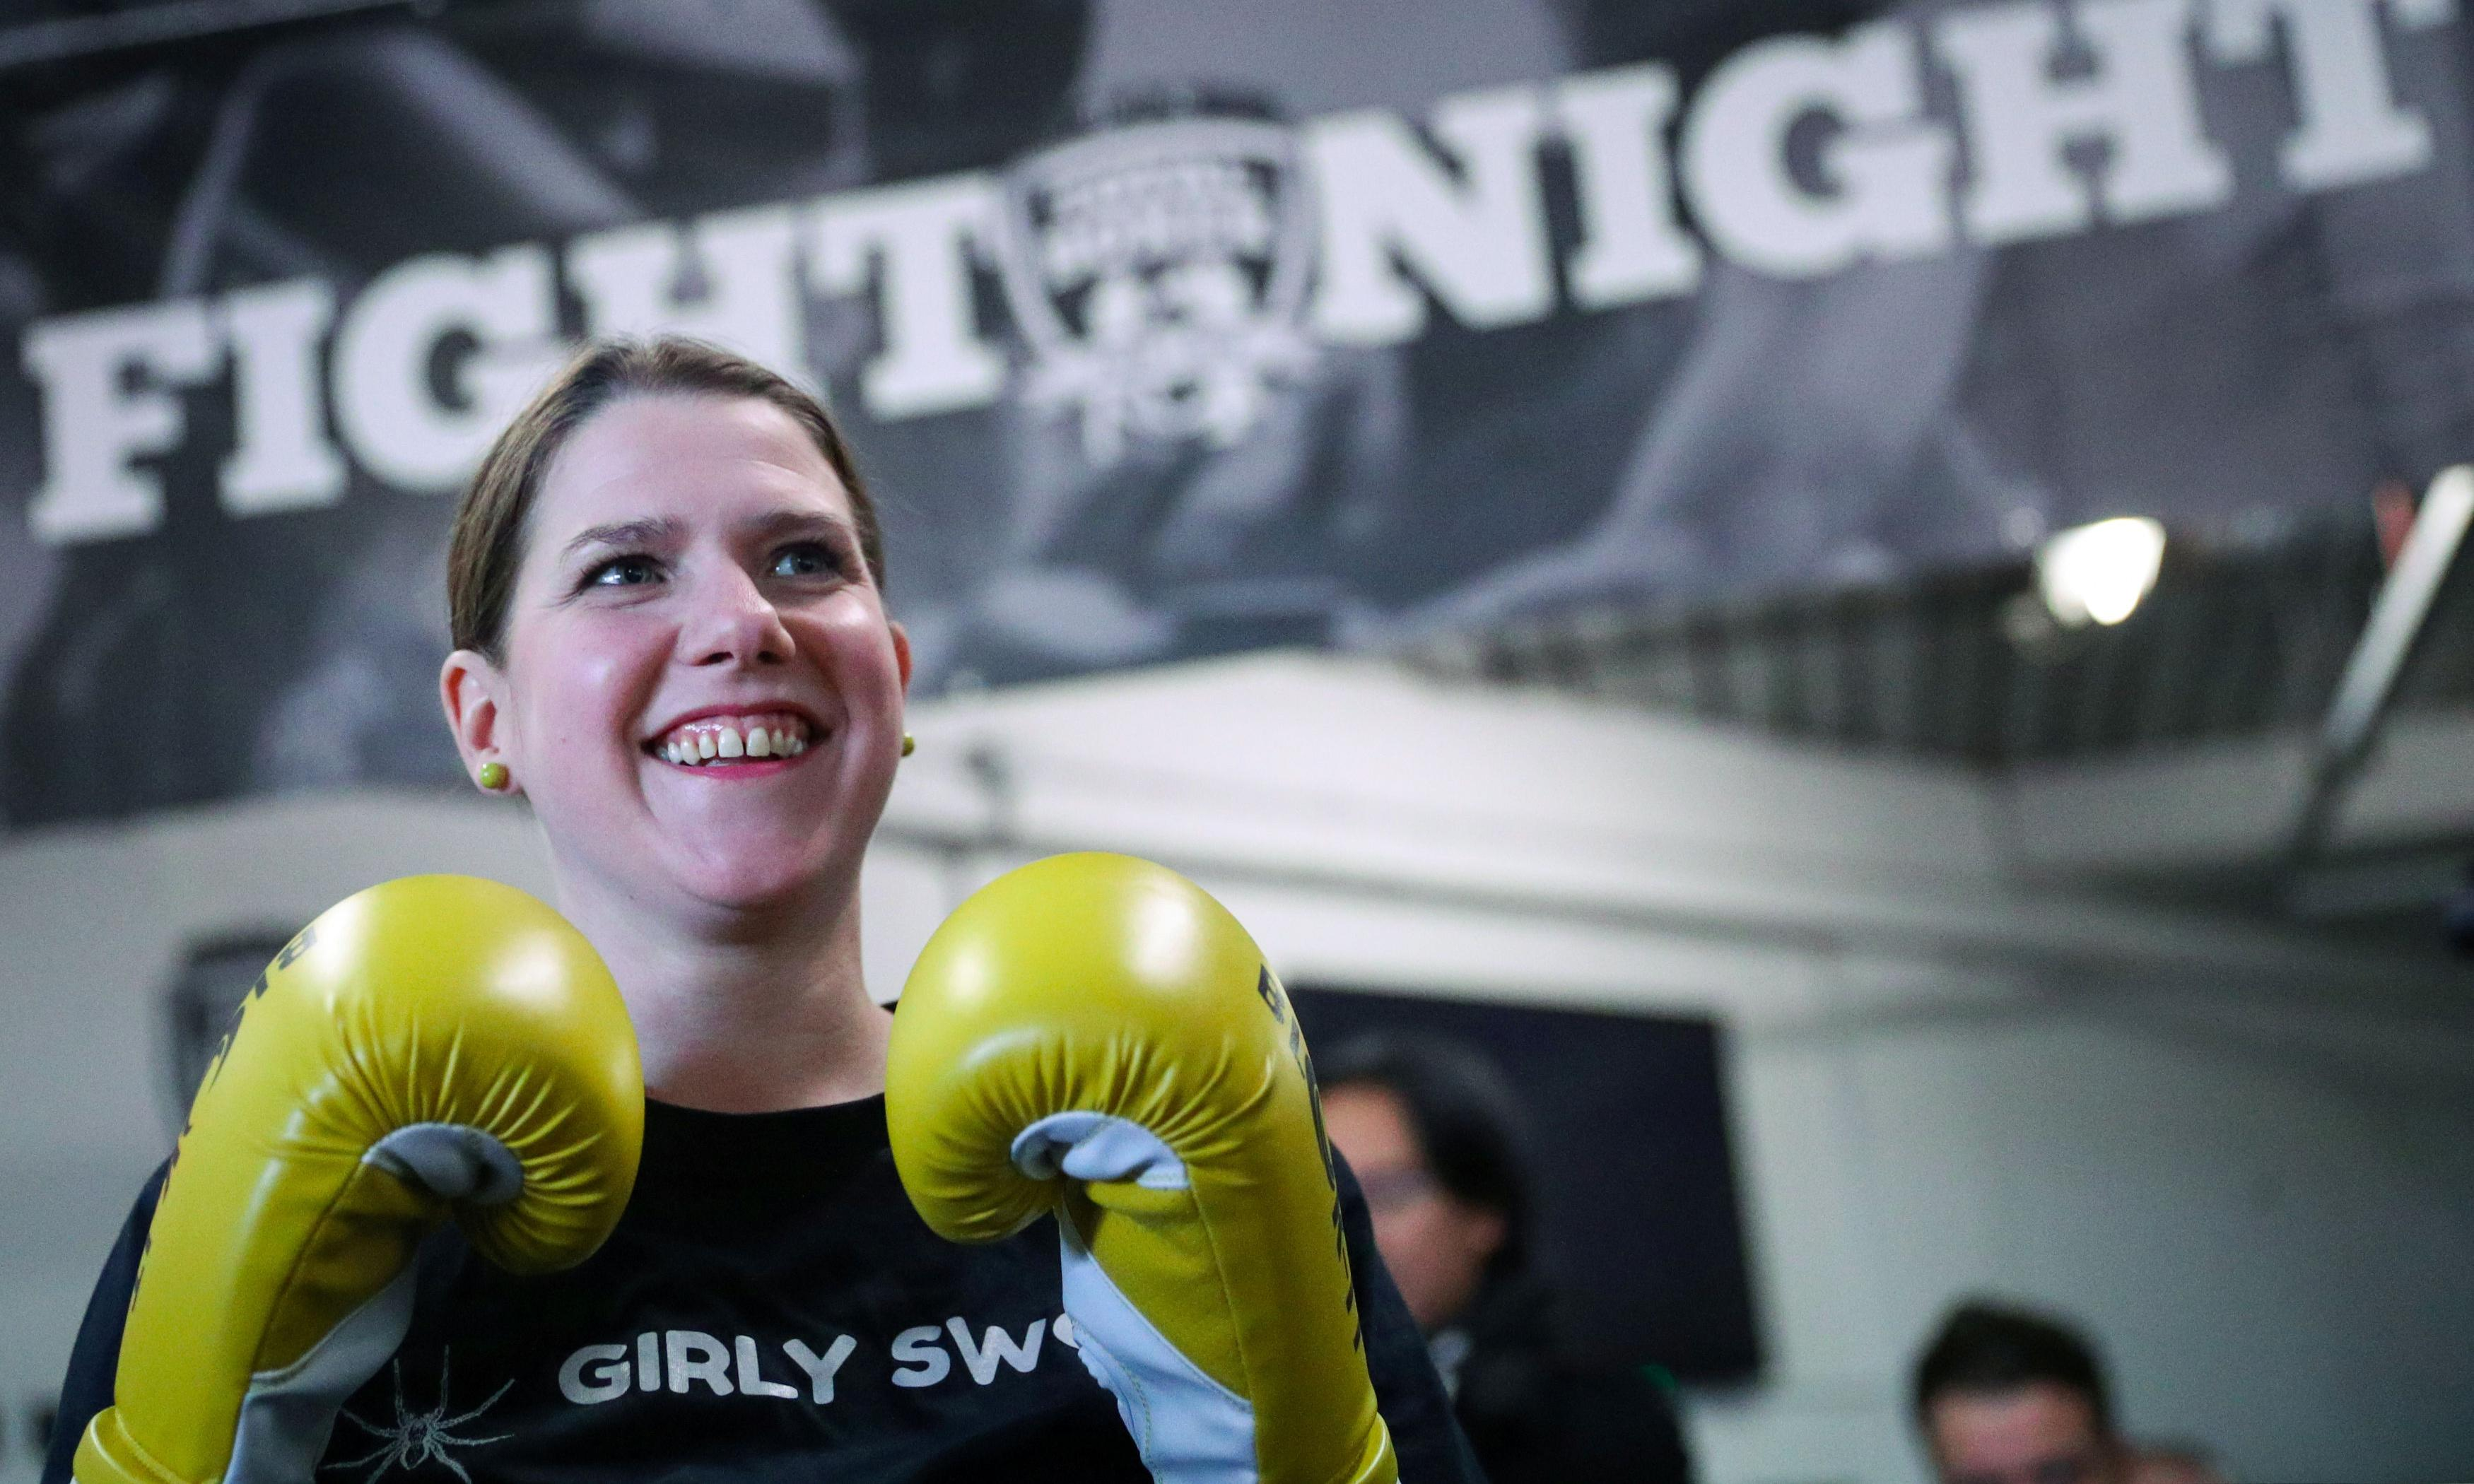 'Girly swot' Jo Swinson fights for more than a ringside seat in ITV debates